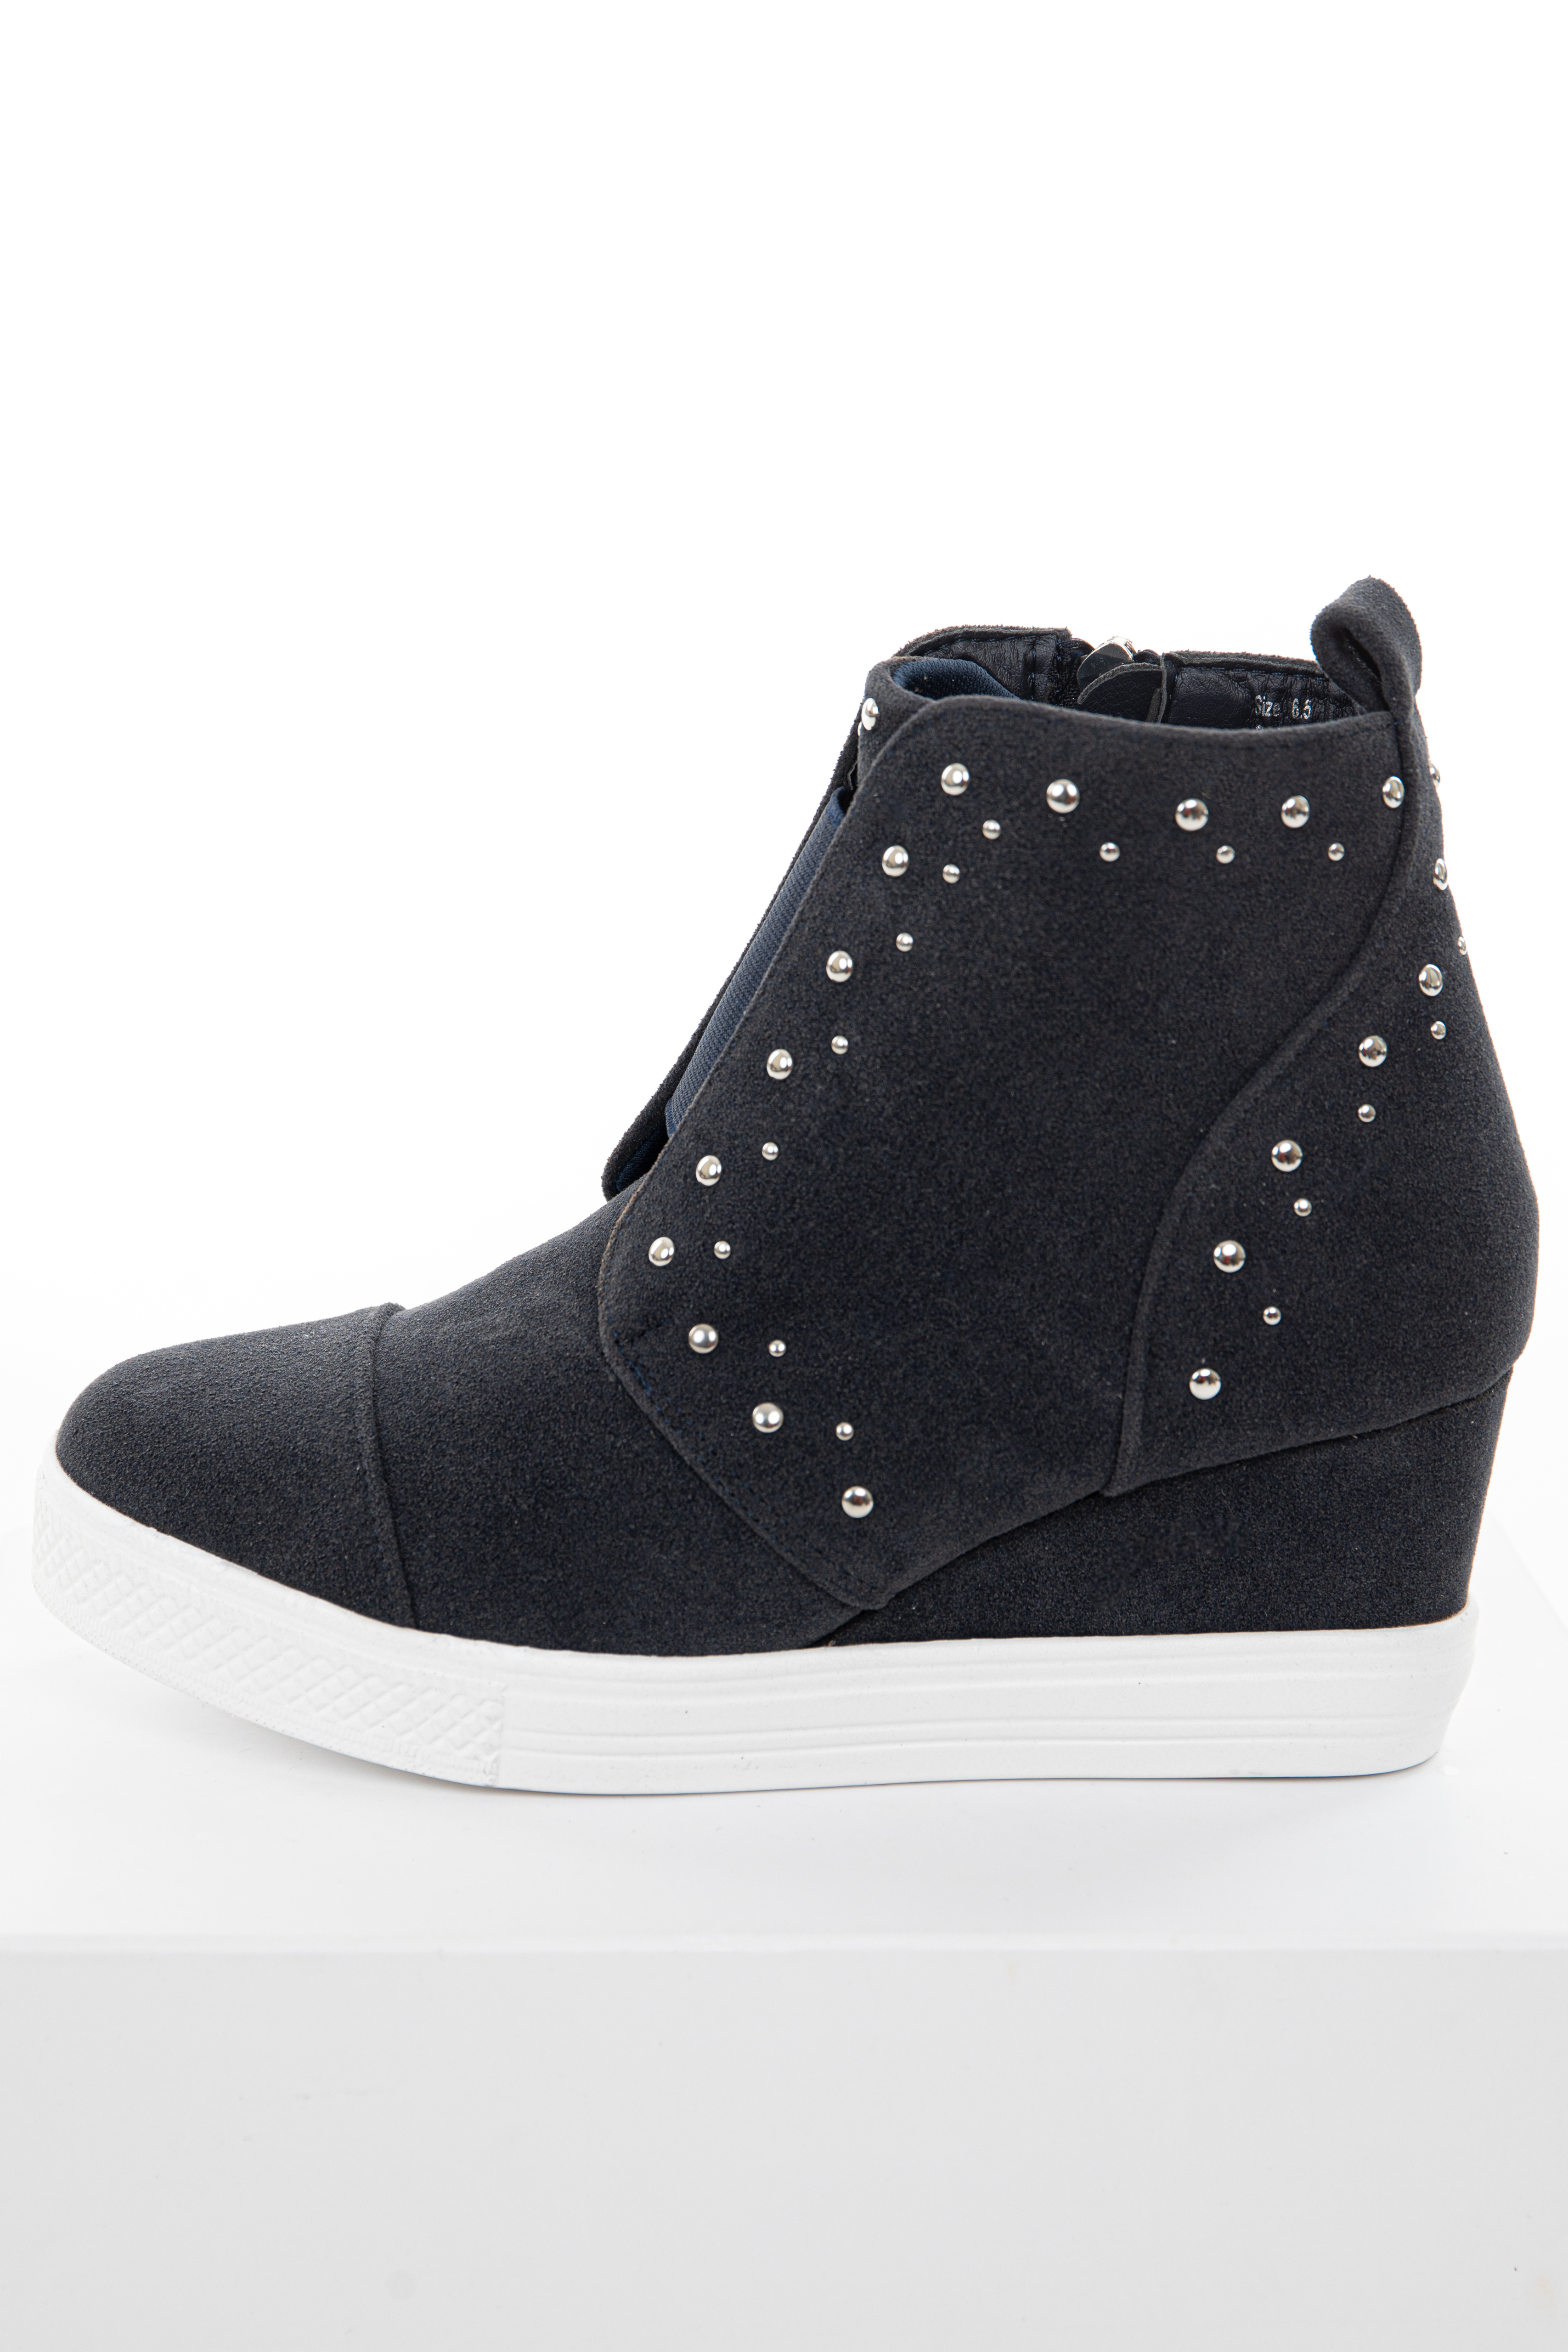 Black Faux Suede Wedge Sneakers with Silver Stud Details